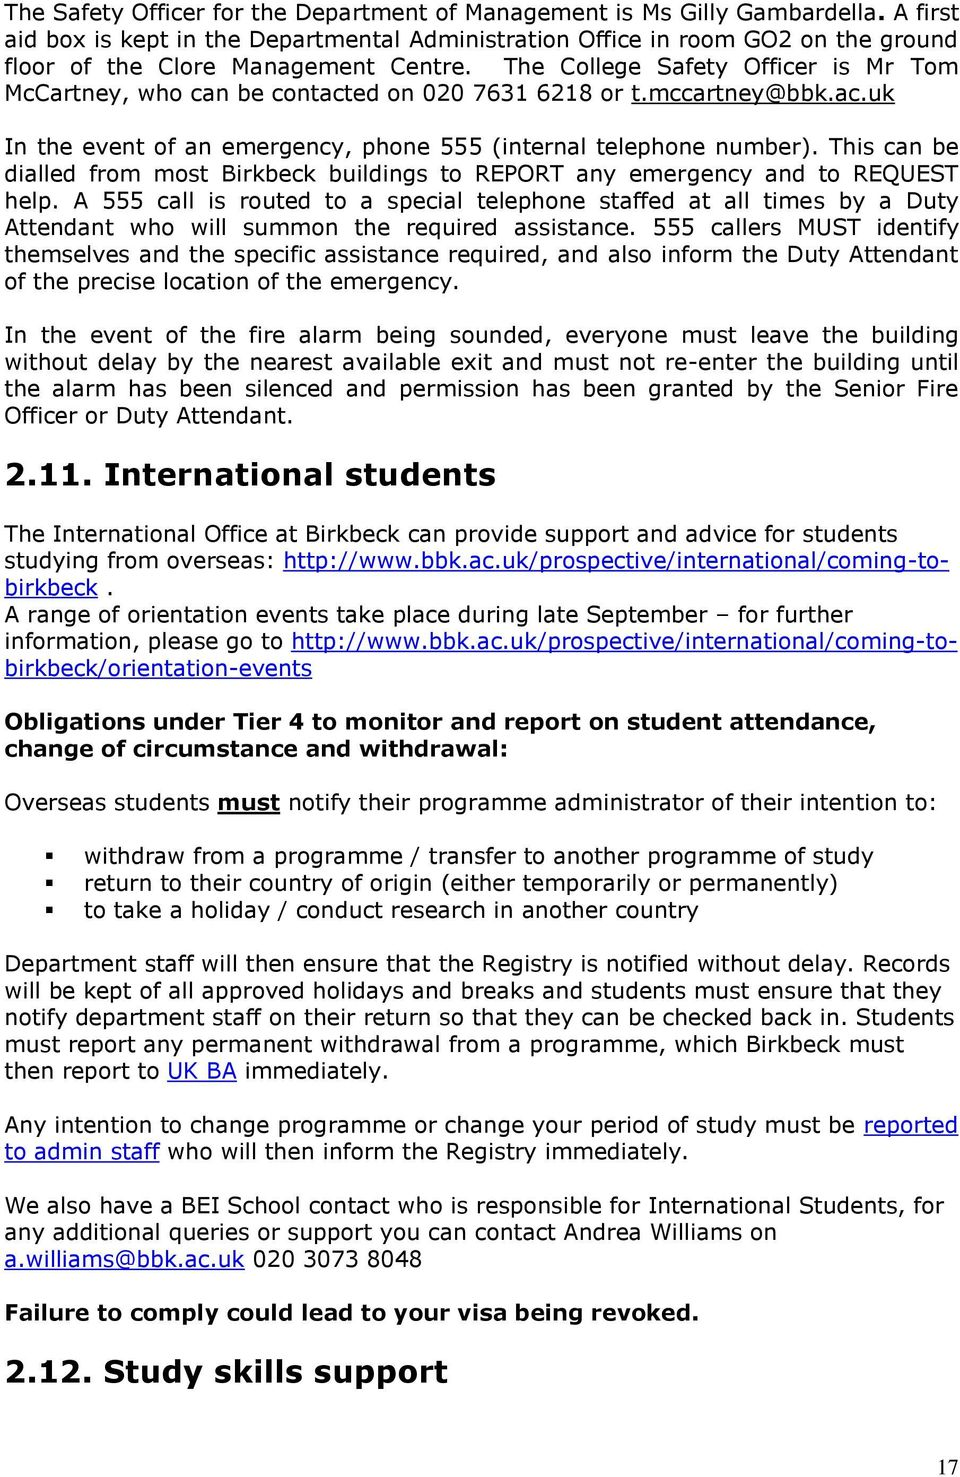 This can be dialled from most Birkbeck buildings to REPORT any emergency and to REQUEST help.